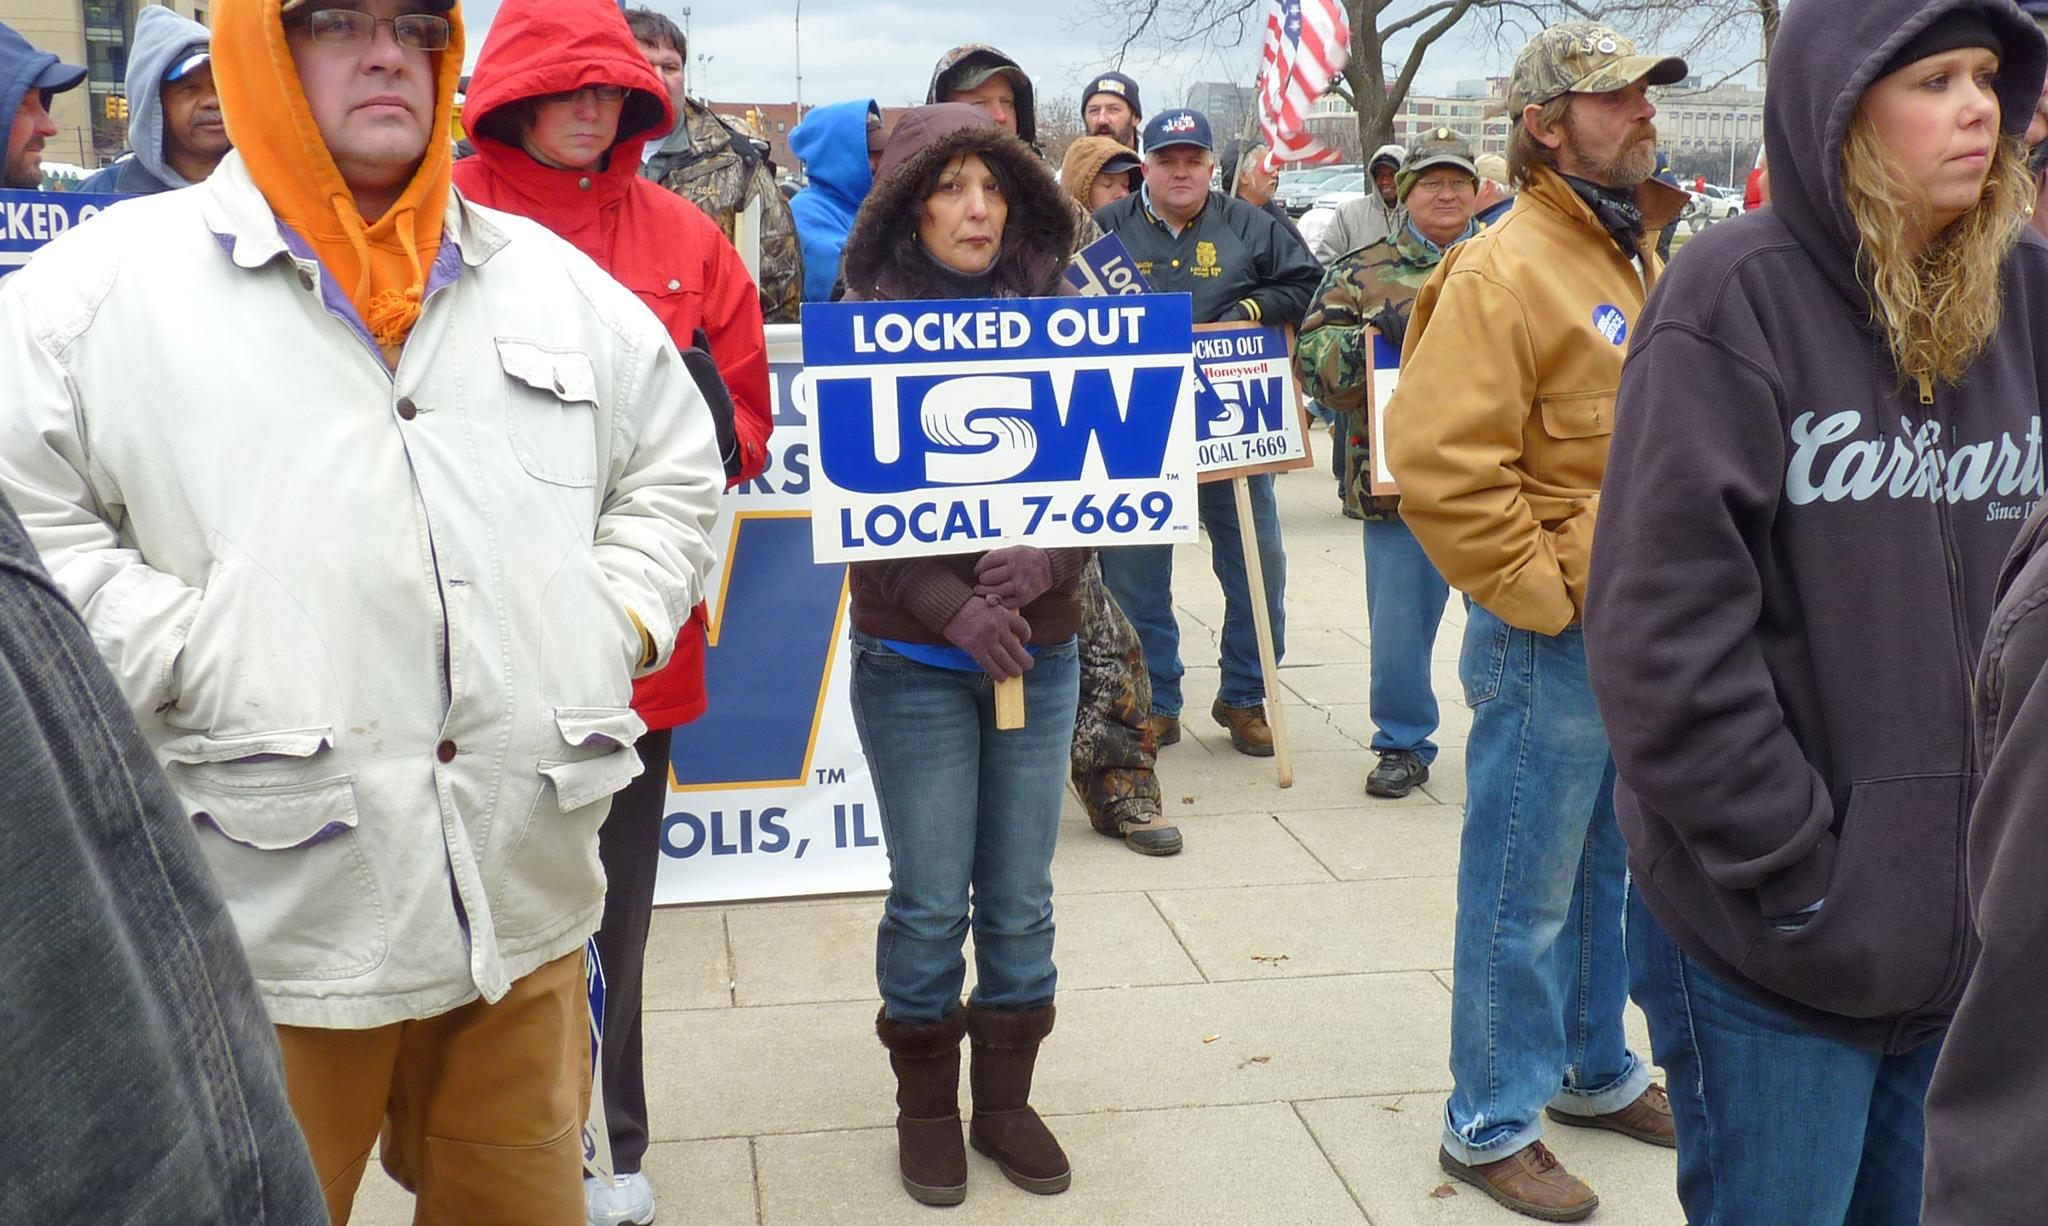 Union Rally at the Indiana Statehouse - Addendum by jeanne.winstead